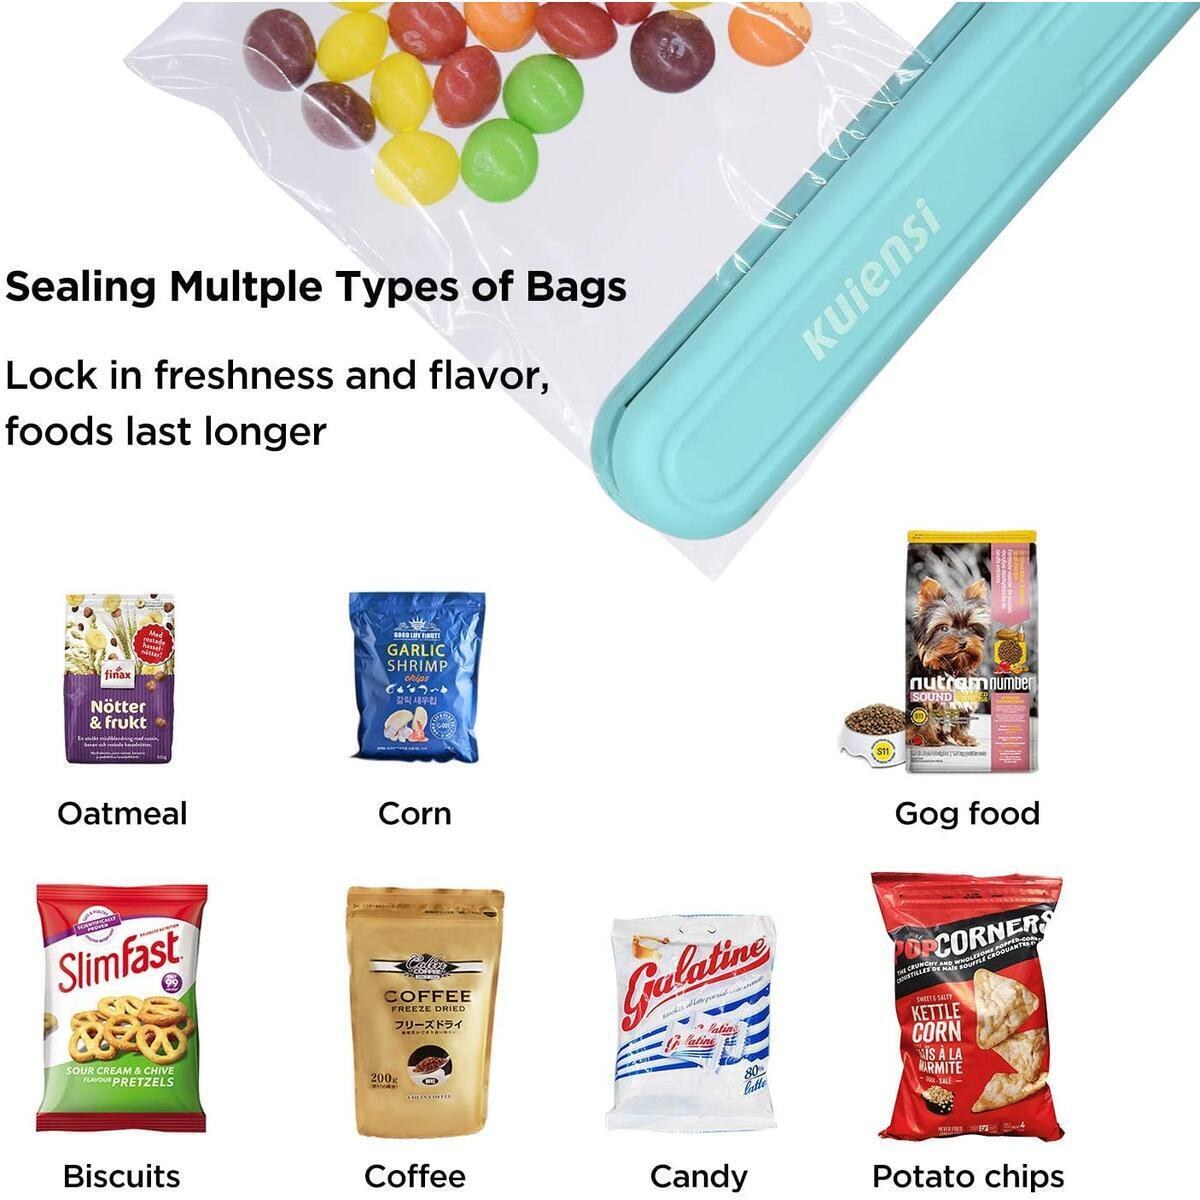 Food Bag Heat Sealer Handheld, Portable Mini Sealing Machine for Bag Food Storage, Double Smart Switches on the Side with 47 inch Separate Type Power Cable (Green)